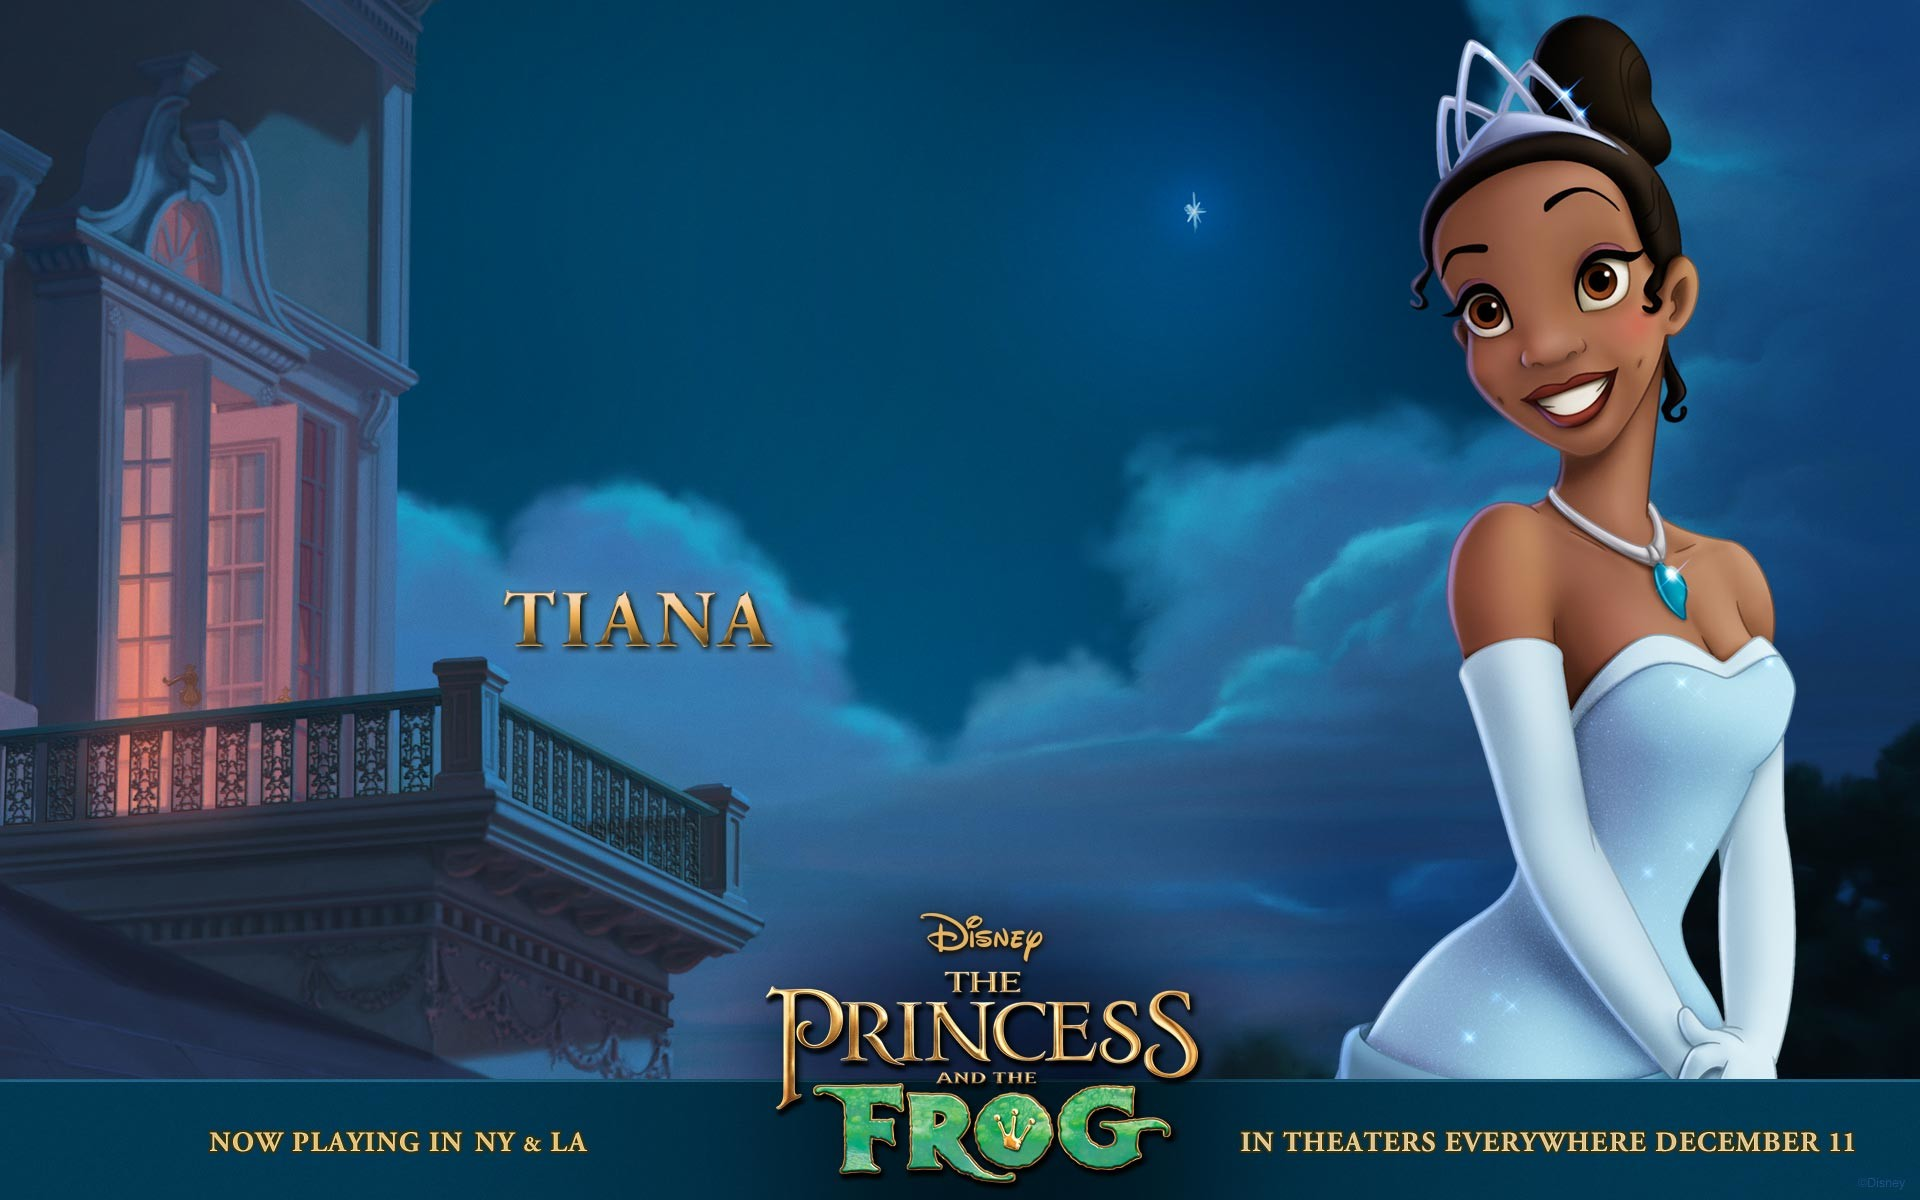 1920x1200 The Princess And The Frog wallpapers disney movie